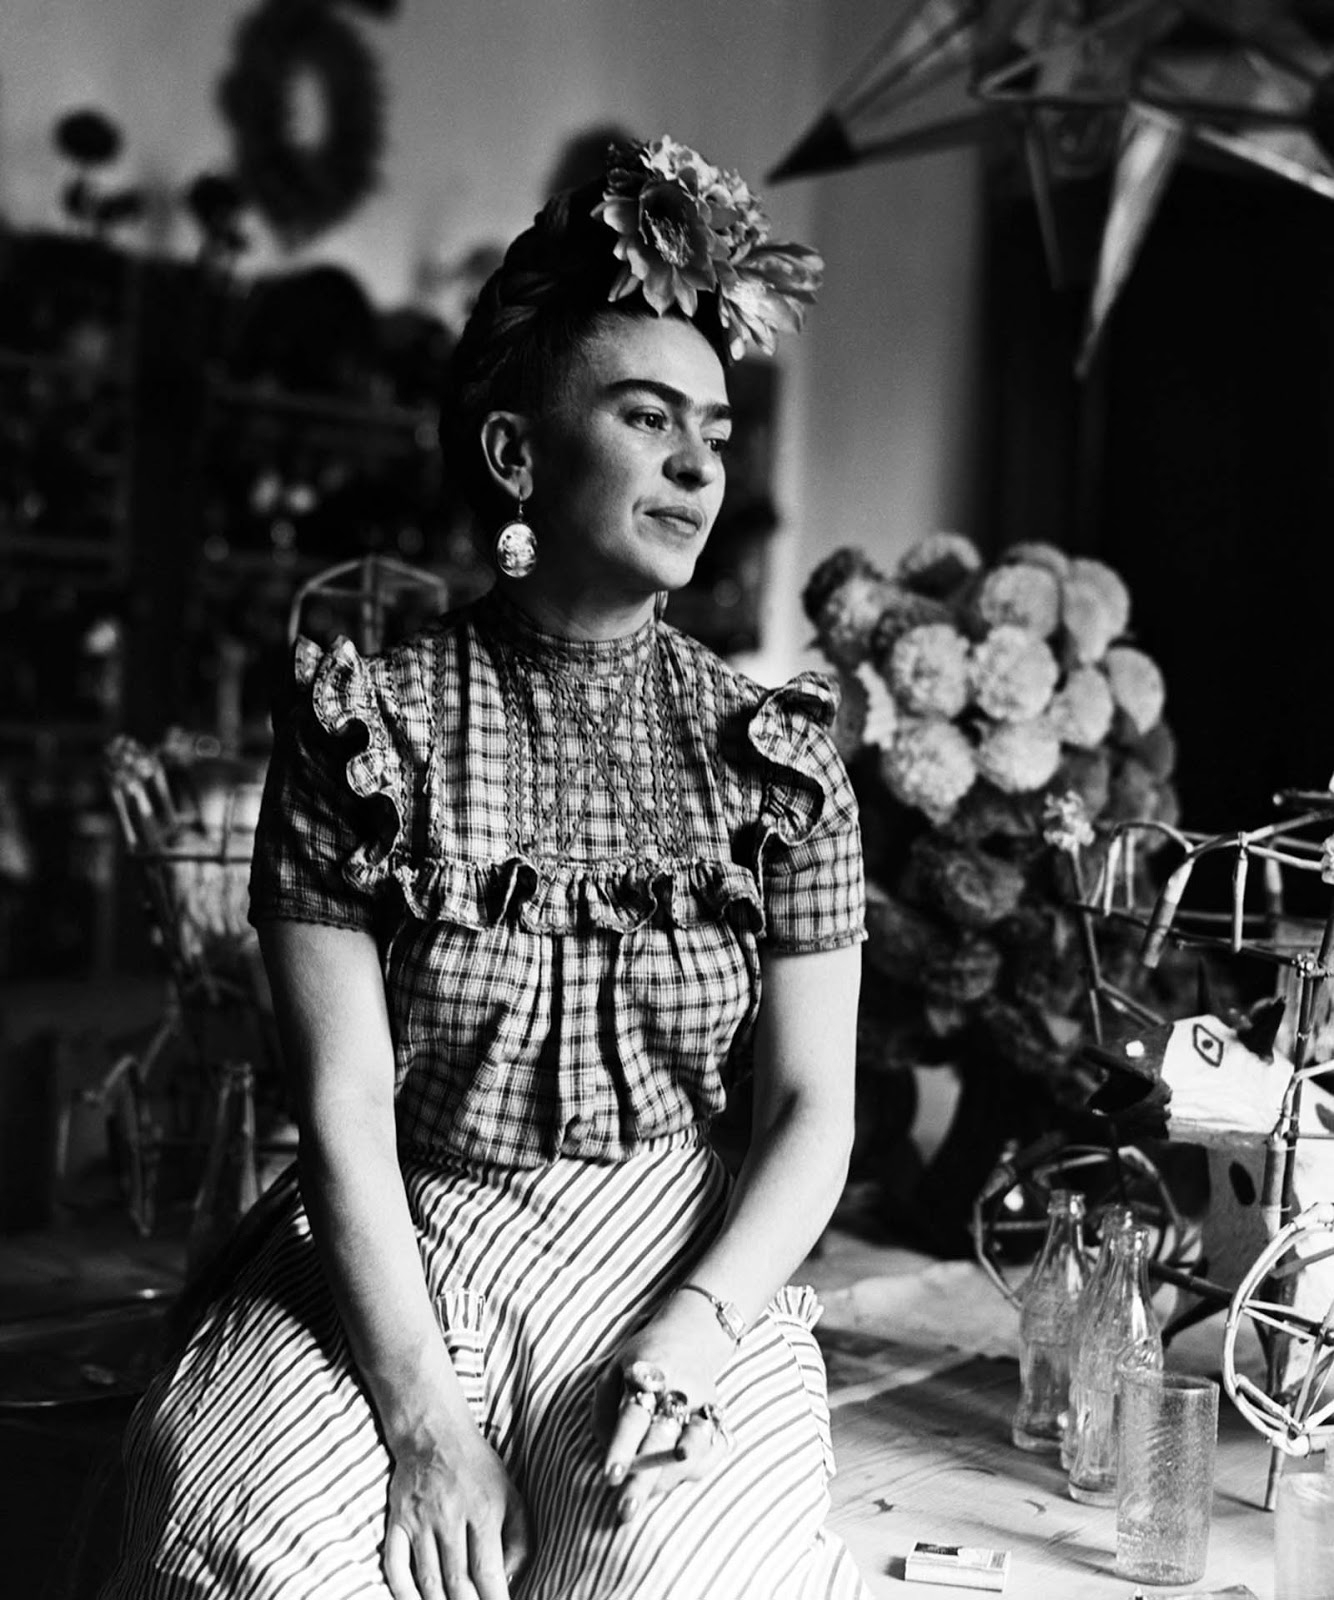 In addition to belonging to the post-revolutionary Mexicayotl movement, which sought to define a Mexican identity, Kahlo has been described as a surrealist or magical realist.